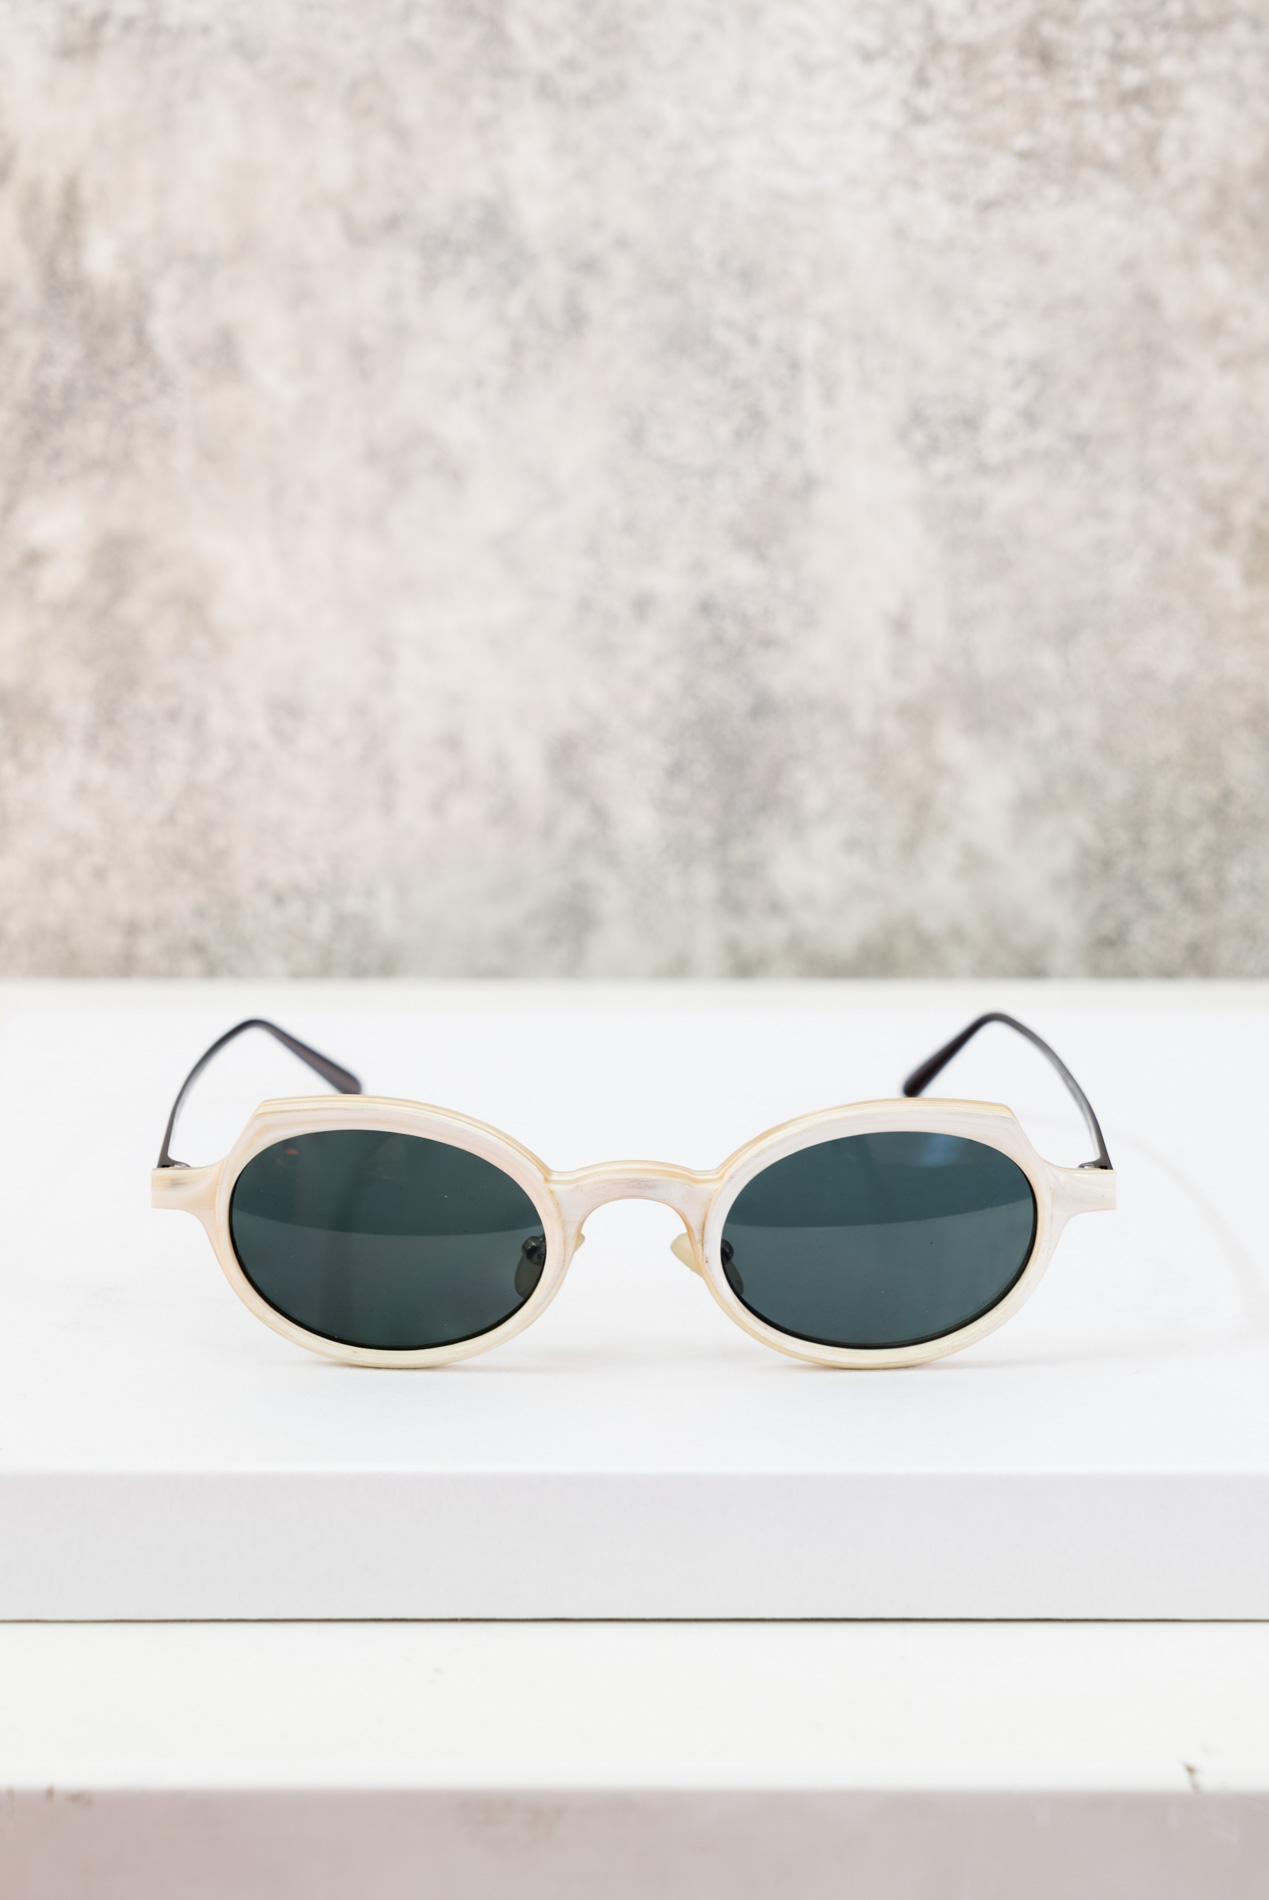 29843ec279 Rigards sunglasses 0090 Marble Cat s eyes • E S S A P M I